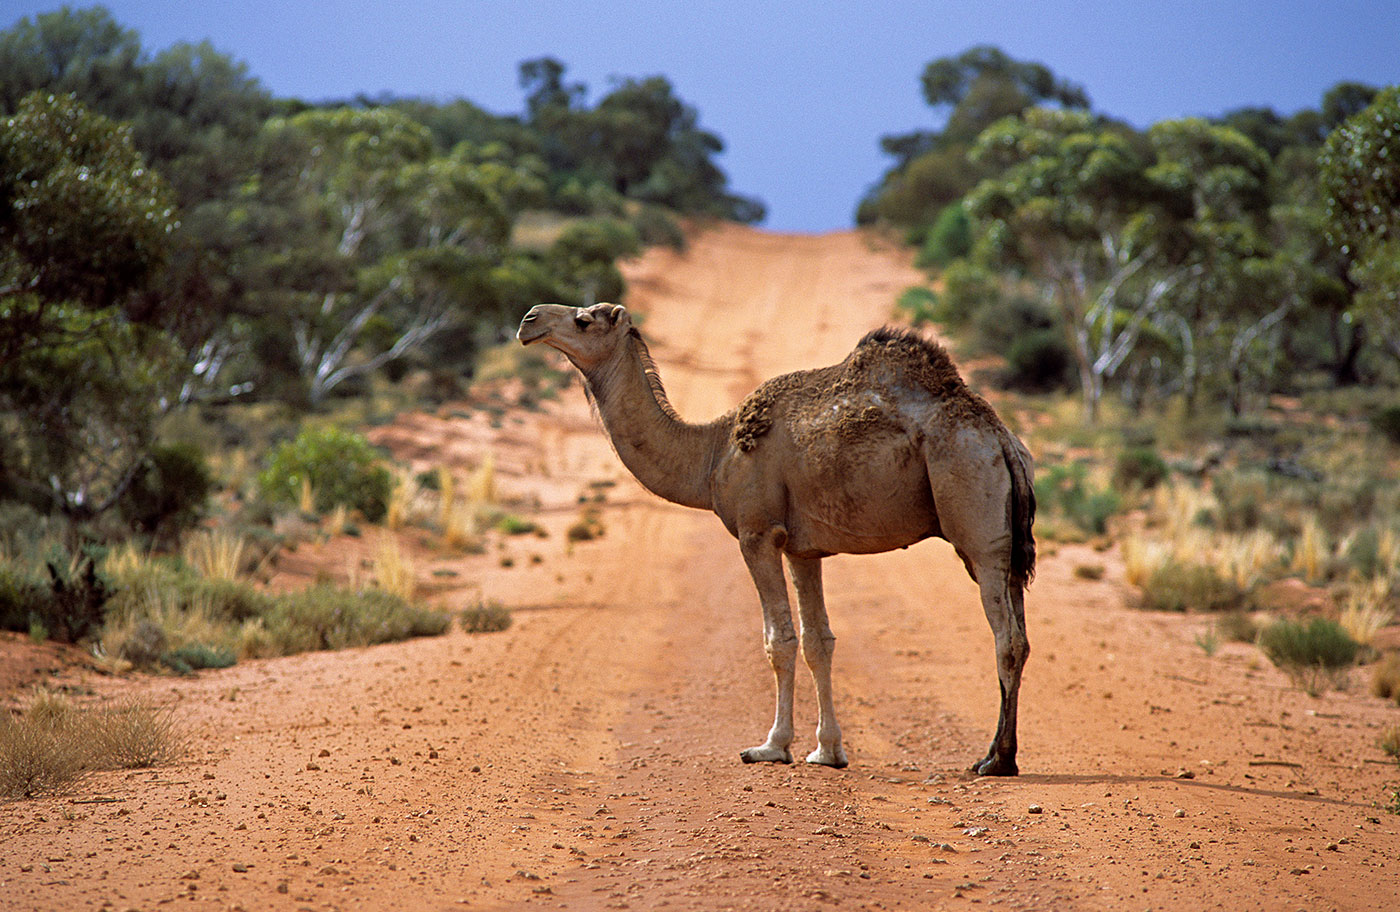 A camel stands on dirt road, with small trees and scrubland on either side.